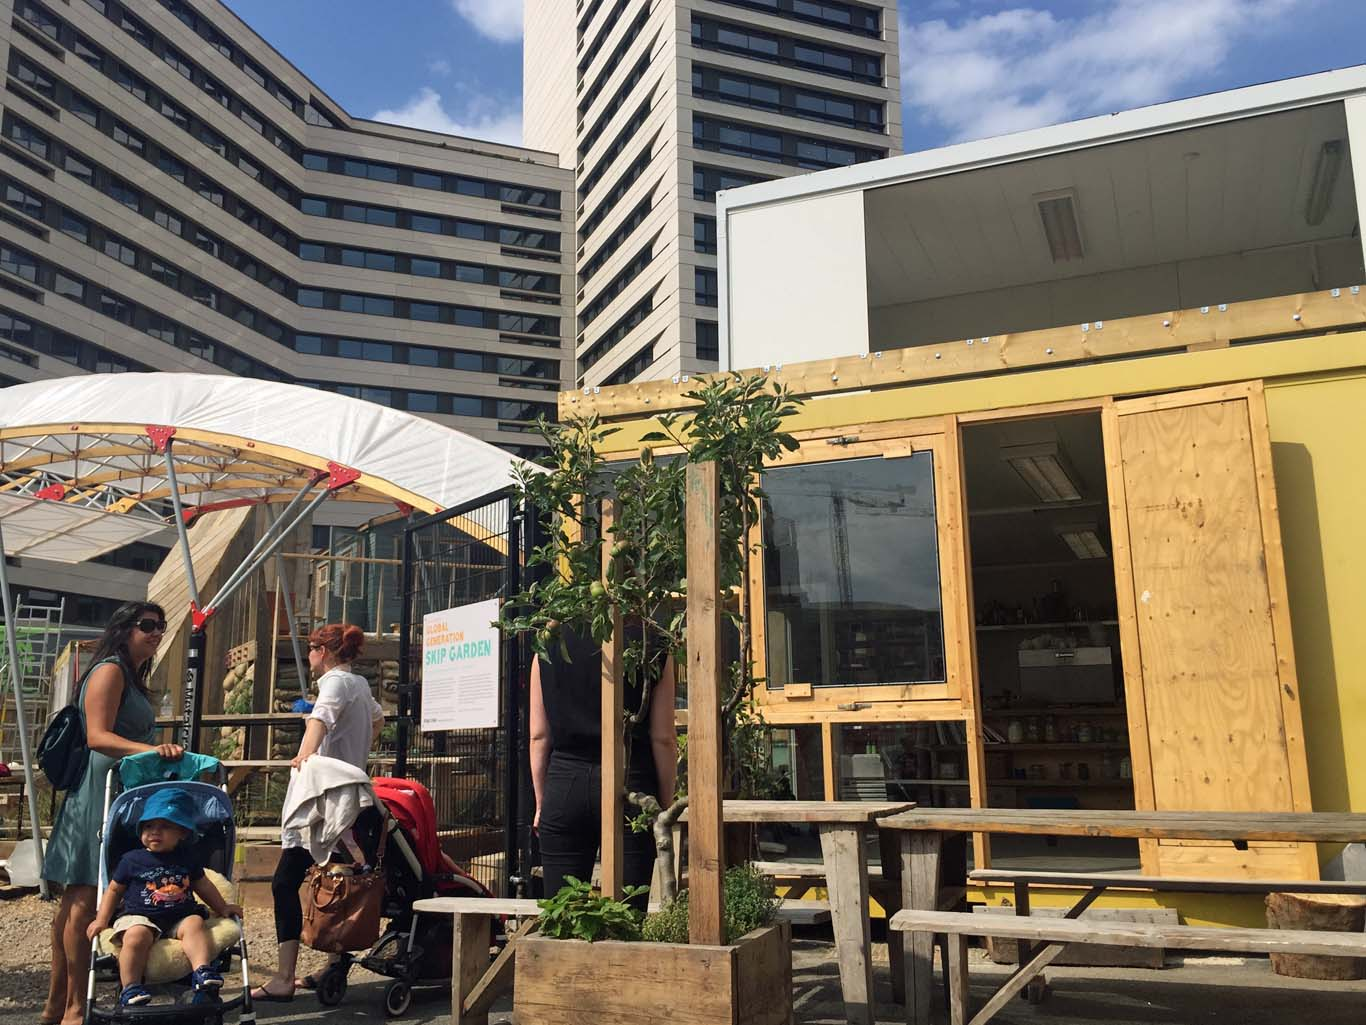 The new Skip Garden opens shortly. Photo: SE